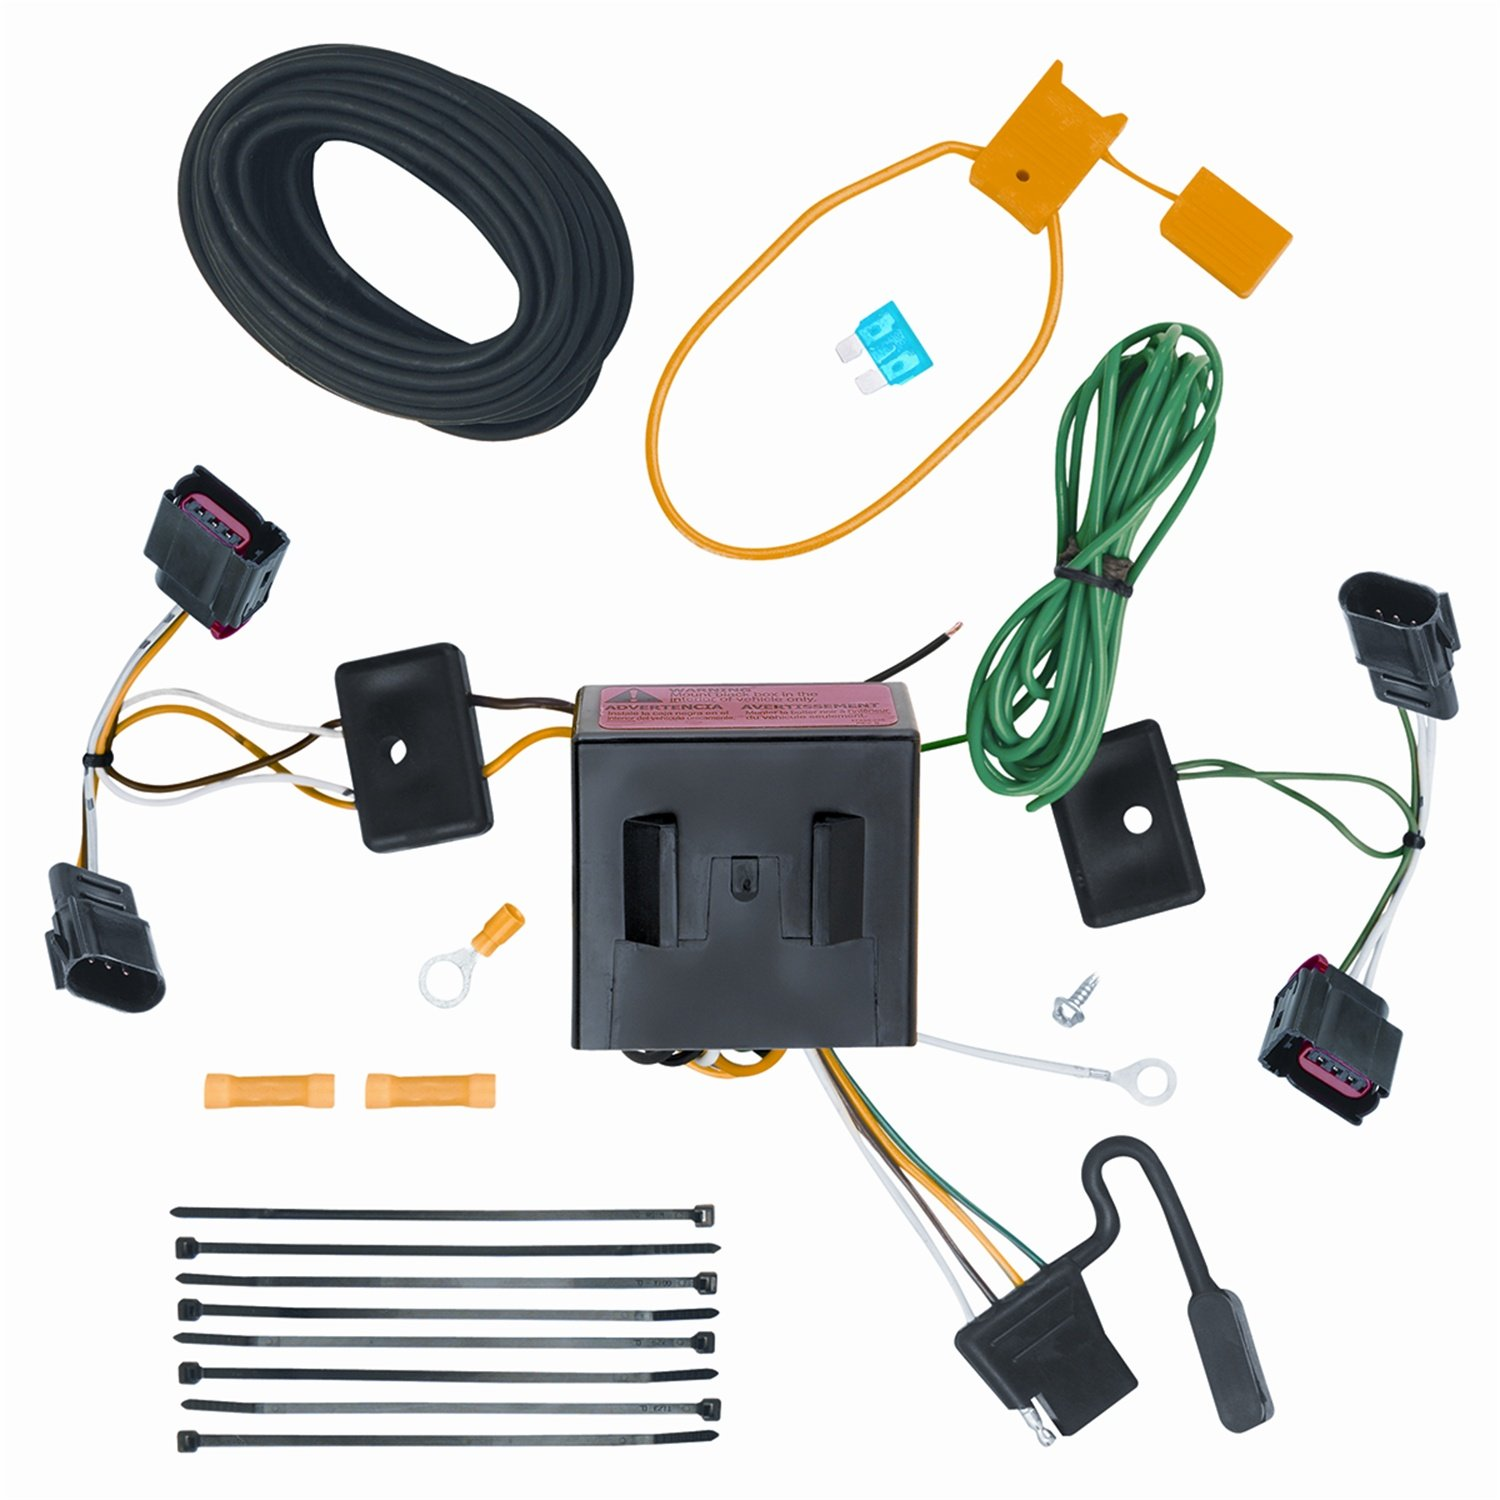 Amazon Trailer Wiring 0812 Jeep Patriot Dodge Caliber 11 – Jeep Wiring Harness For Trailers